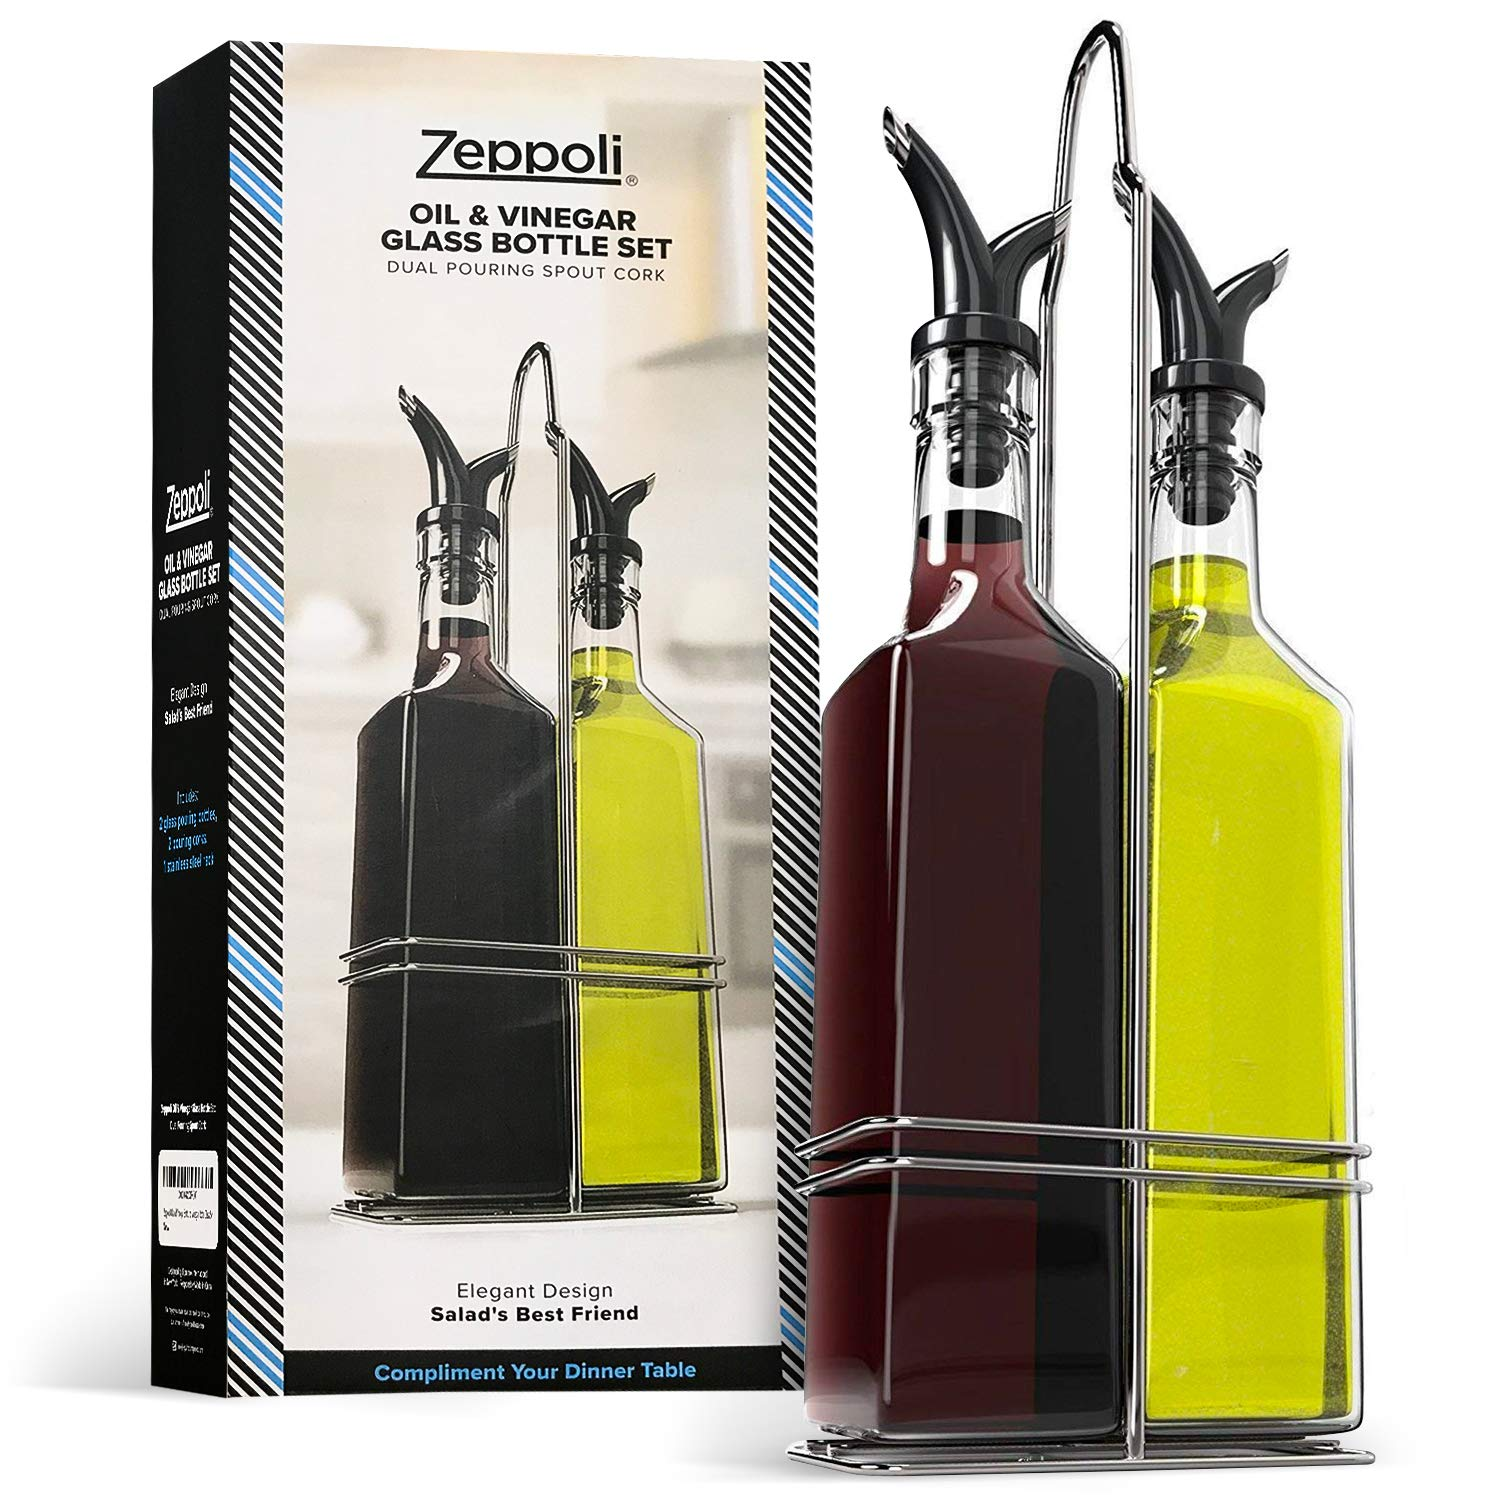 Zeppoli Oil and Vinegar Bottle Set with Stainless Steel Rack and Removable Cork - Dual Olive Oil Spout - Olive Oil Dispenser, 17oz Olive Oil Bottle and Vinegar Bottle Glass Set by Zeppoli